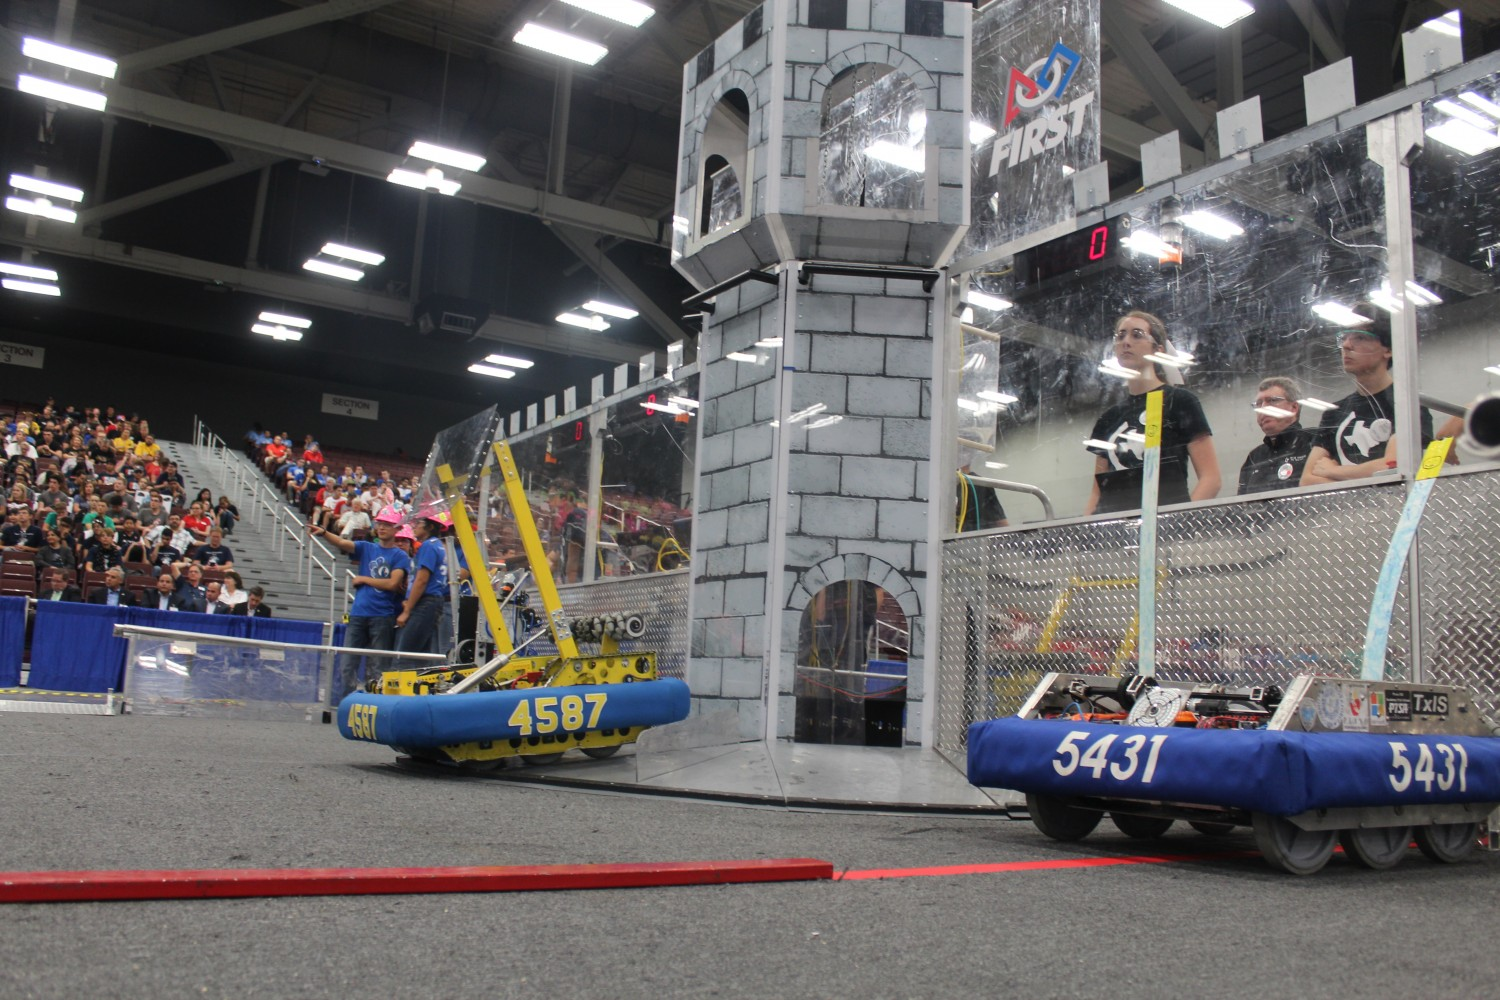 Robotics State Championship in July 'Exceeds' Expectations